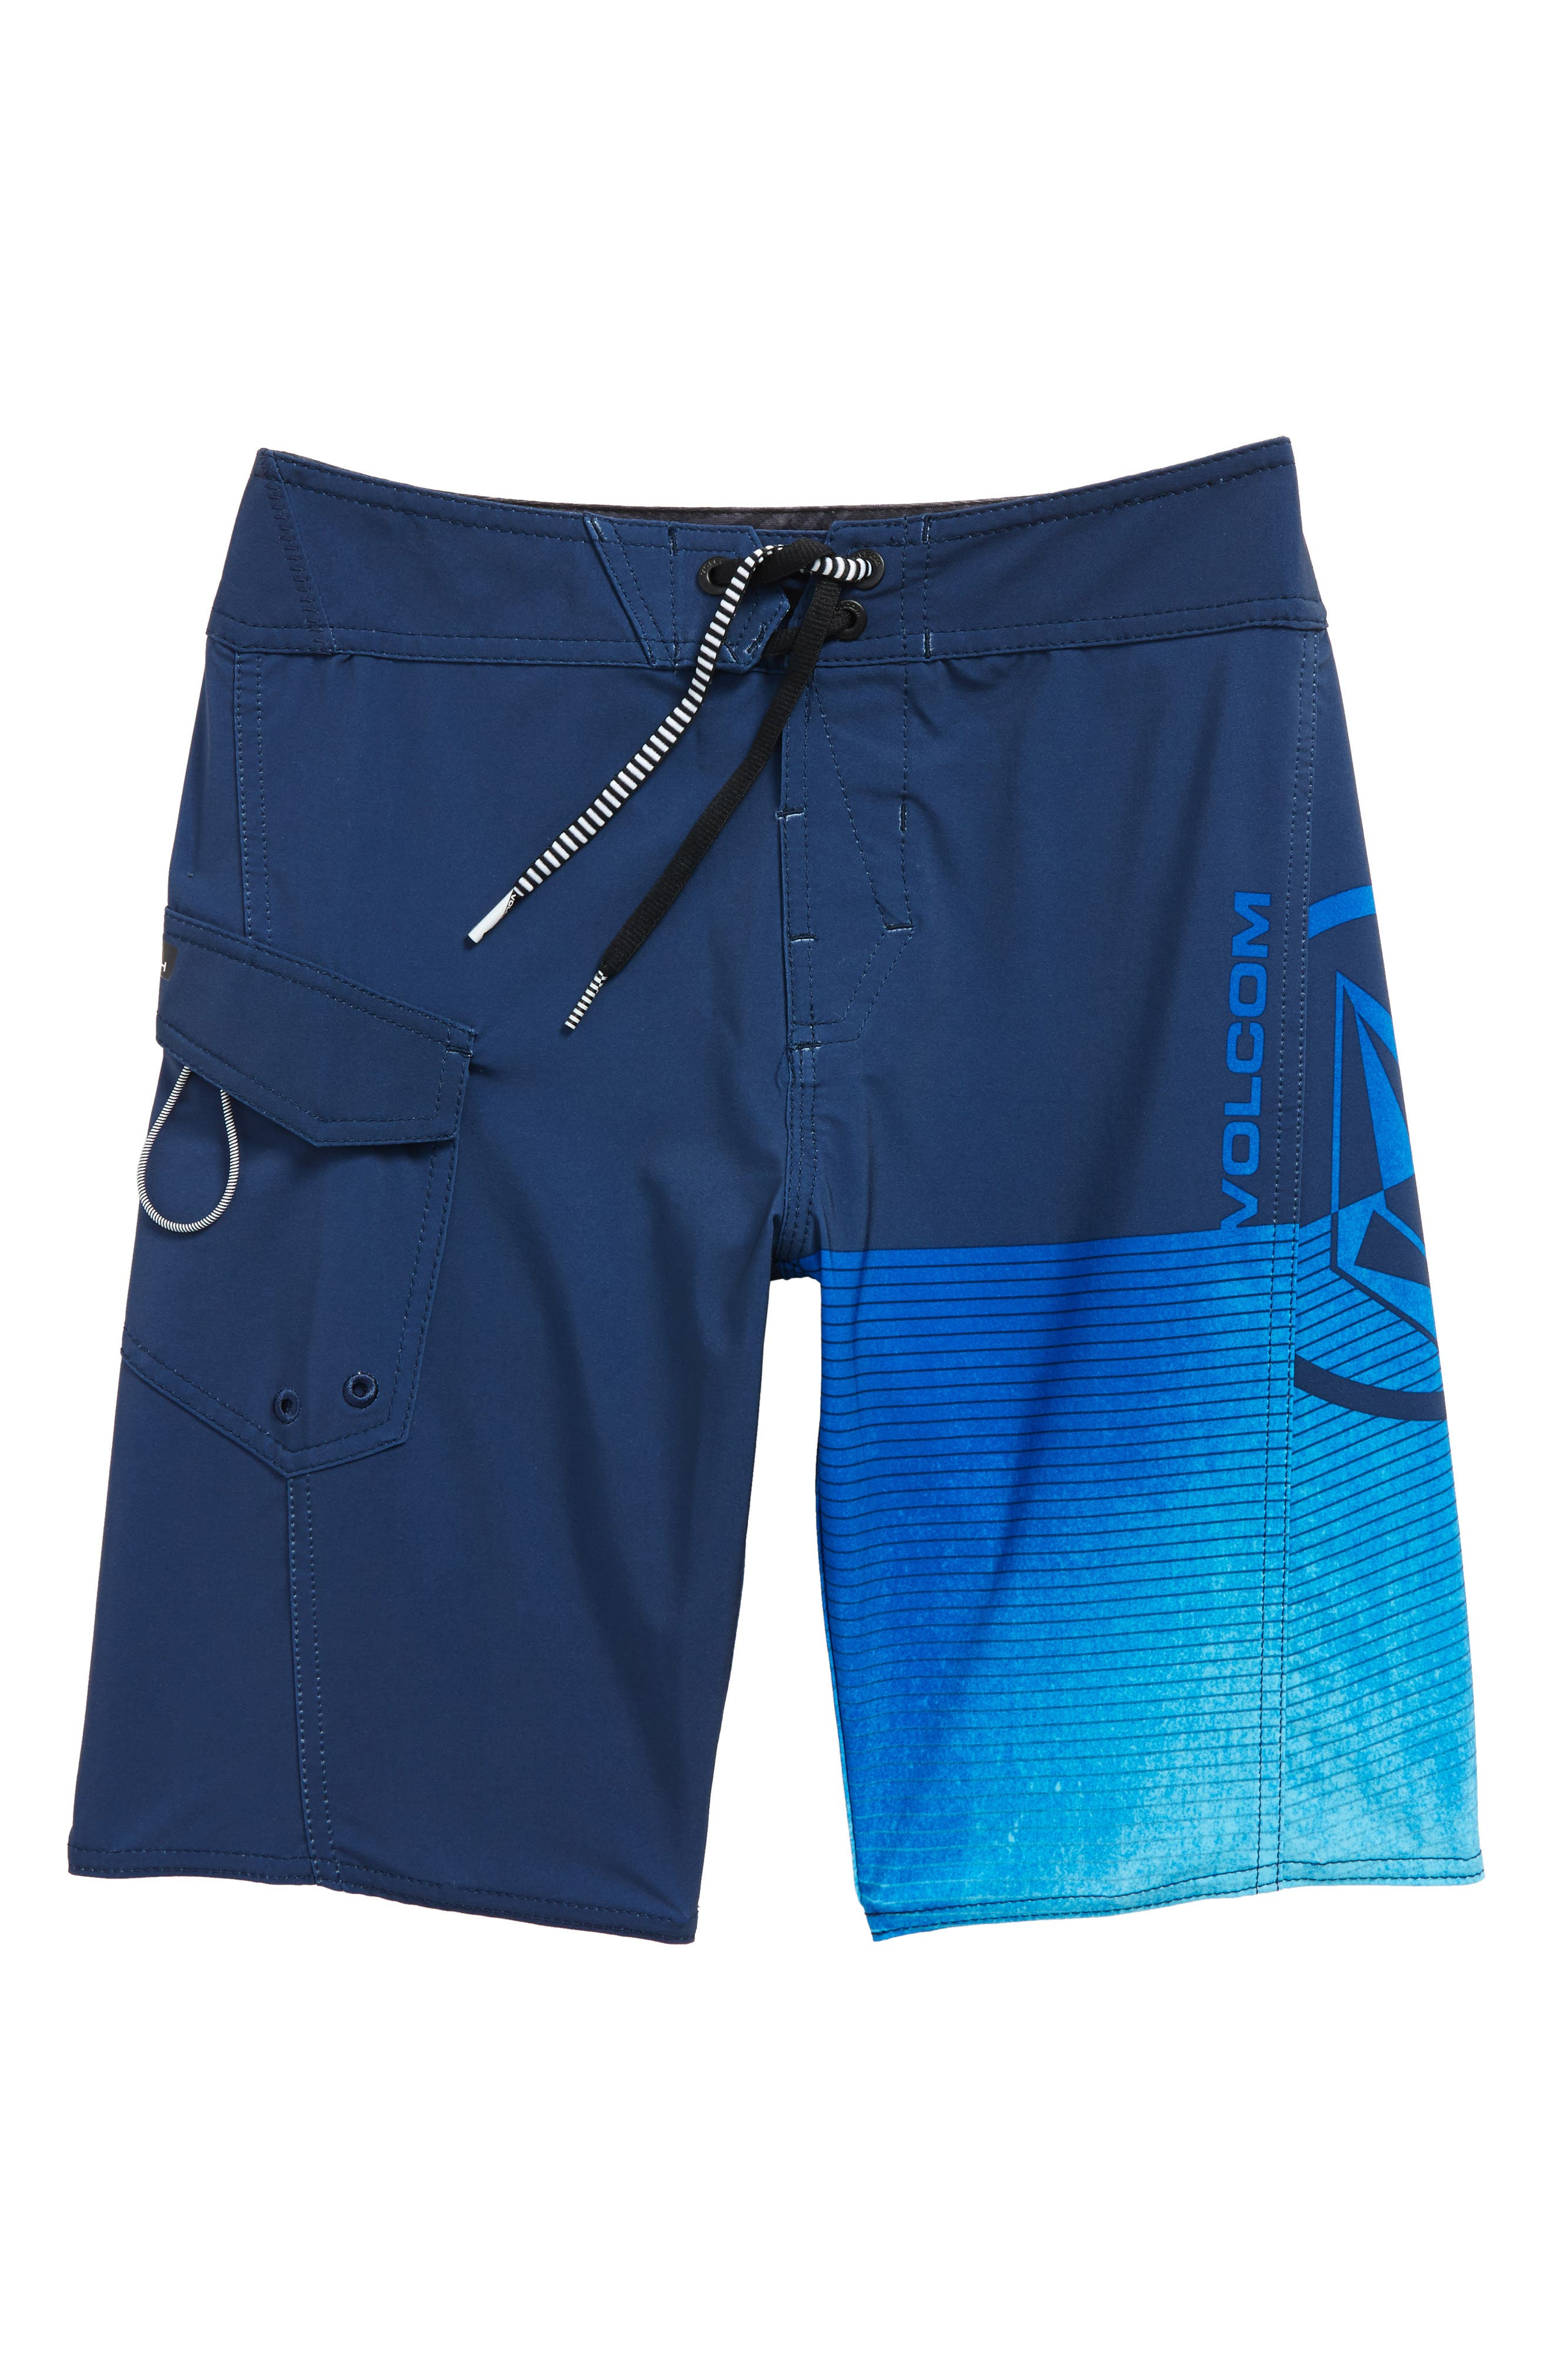 Costa Logo Mod Board Shorts,                             Main thumbnail 1, color,                             405